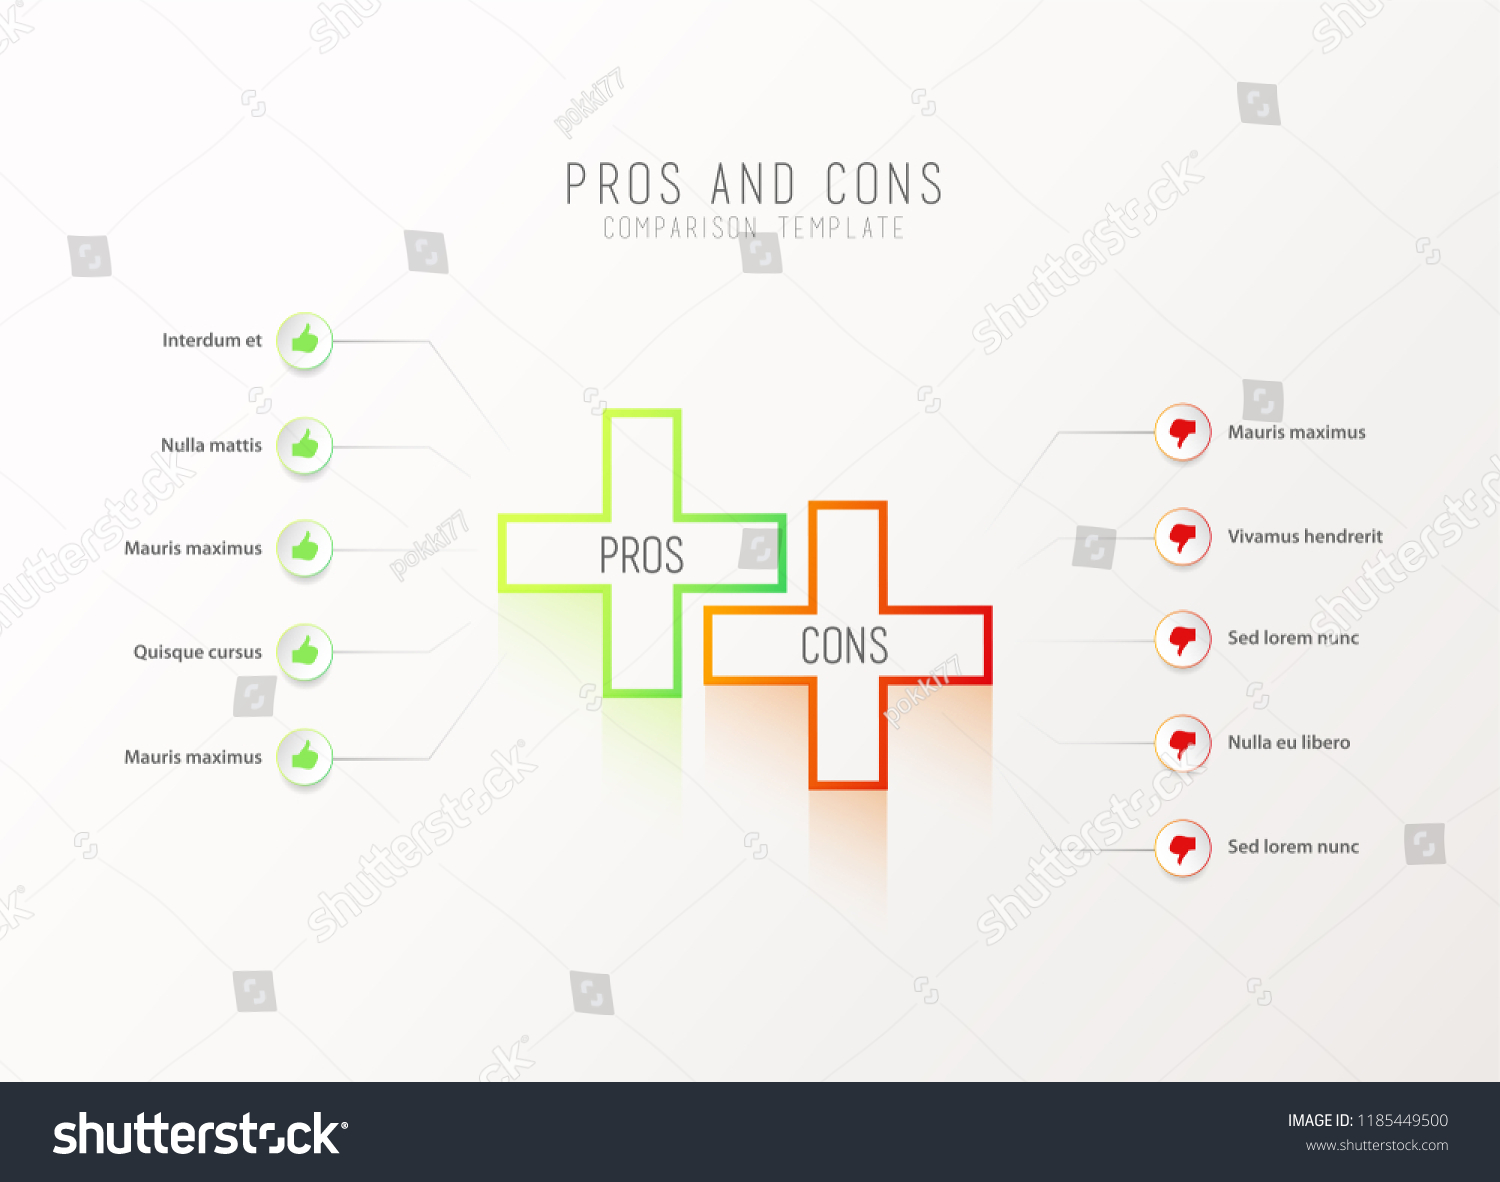 Pros And Cons Comparison Vector Template Light With Green Orange Plus Signs